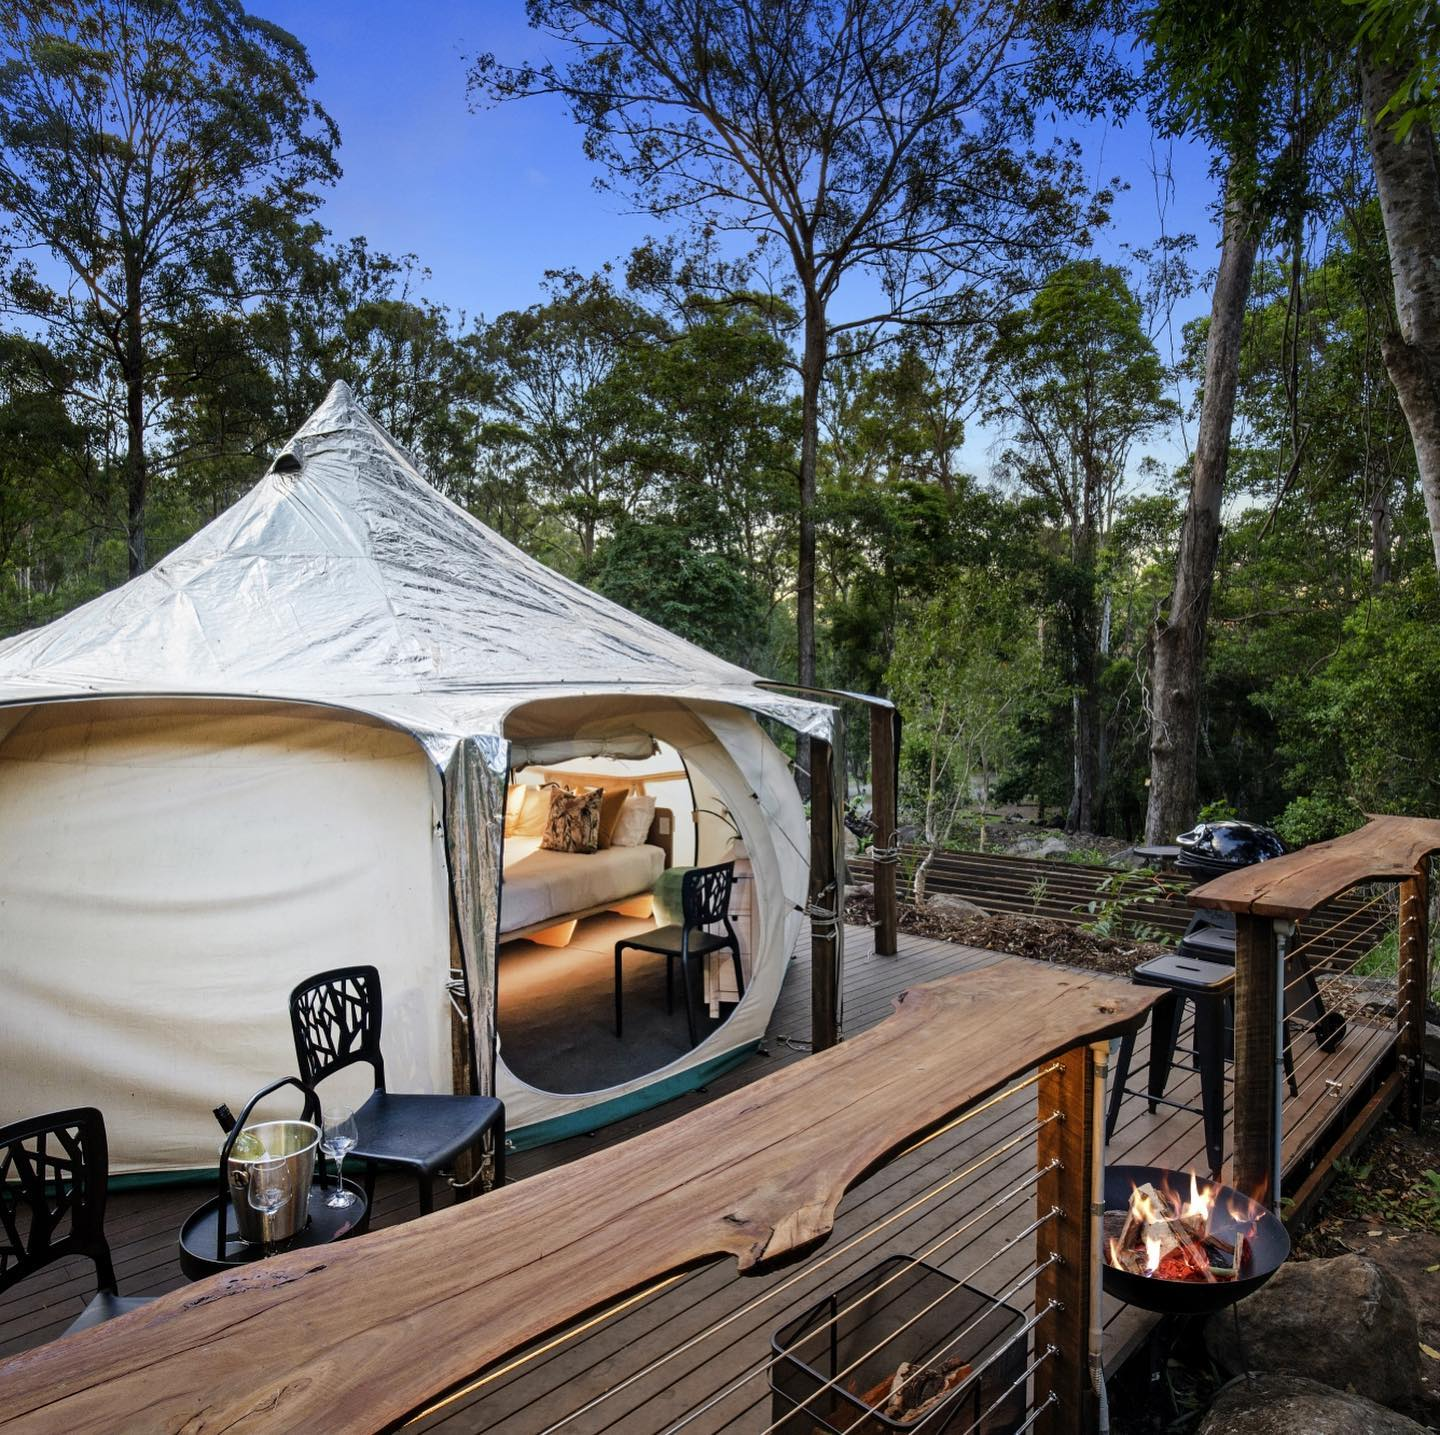 a lotus-shaped tent on a deck in the forest